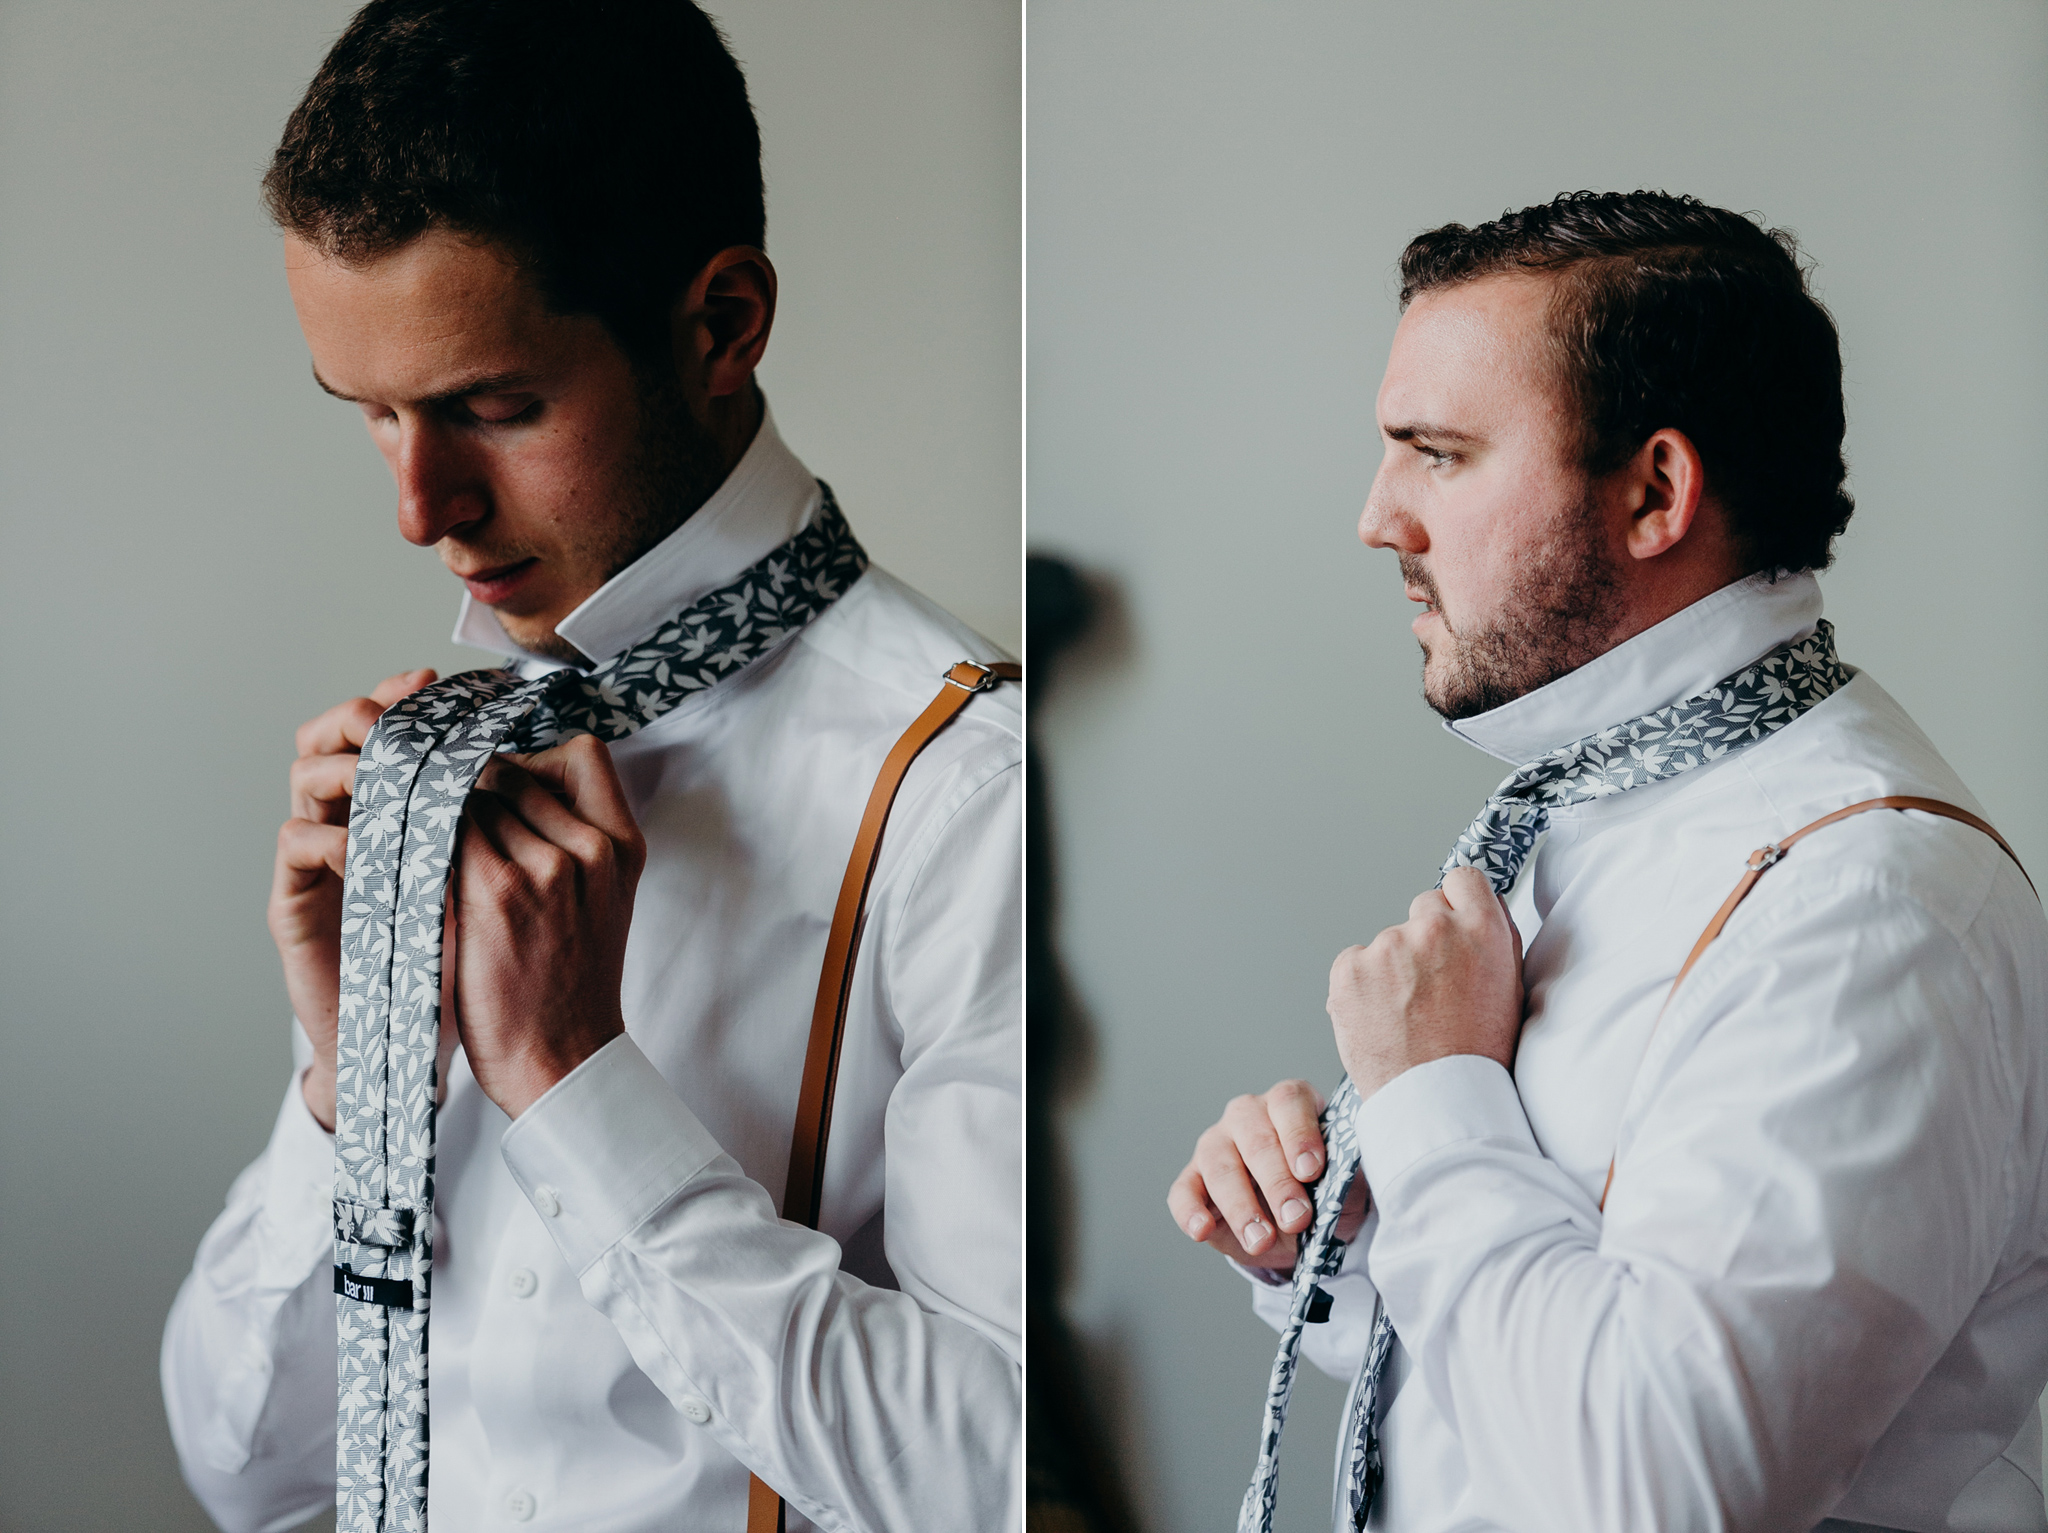 Groomsmen tying ties getting ready against white background